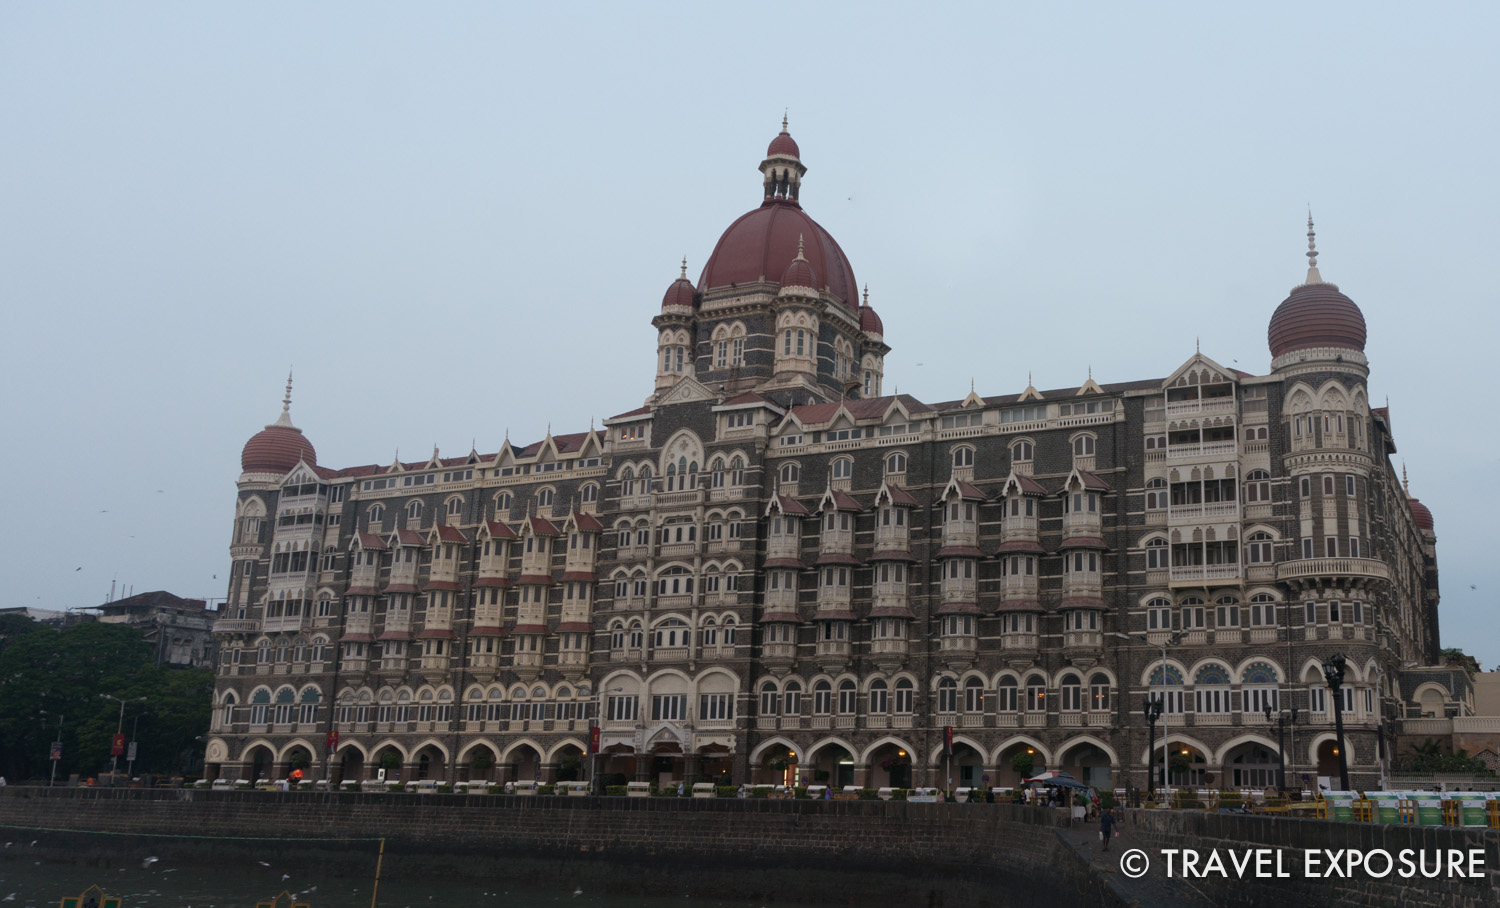 The famous Taj Mahal Palace hotel in Mumbai